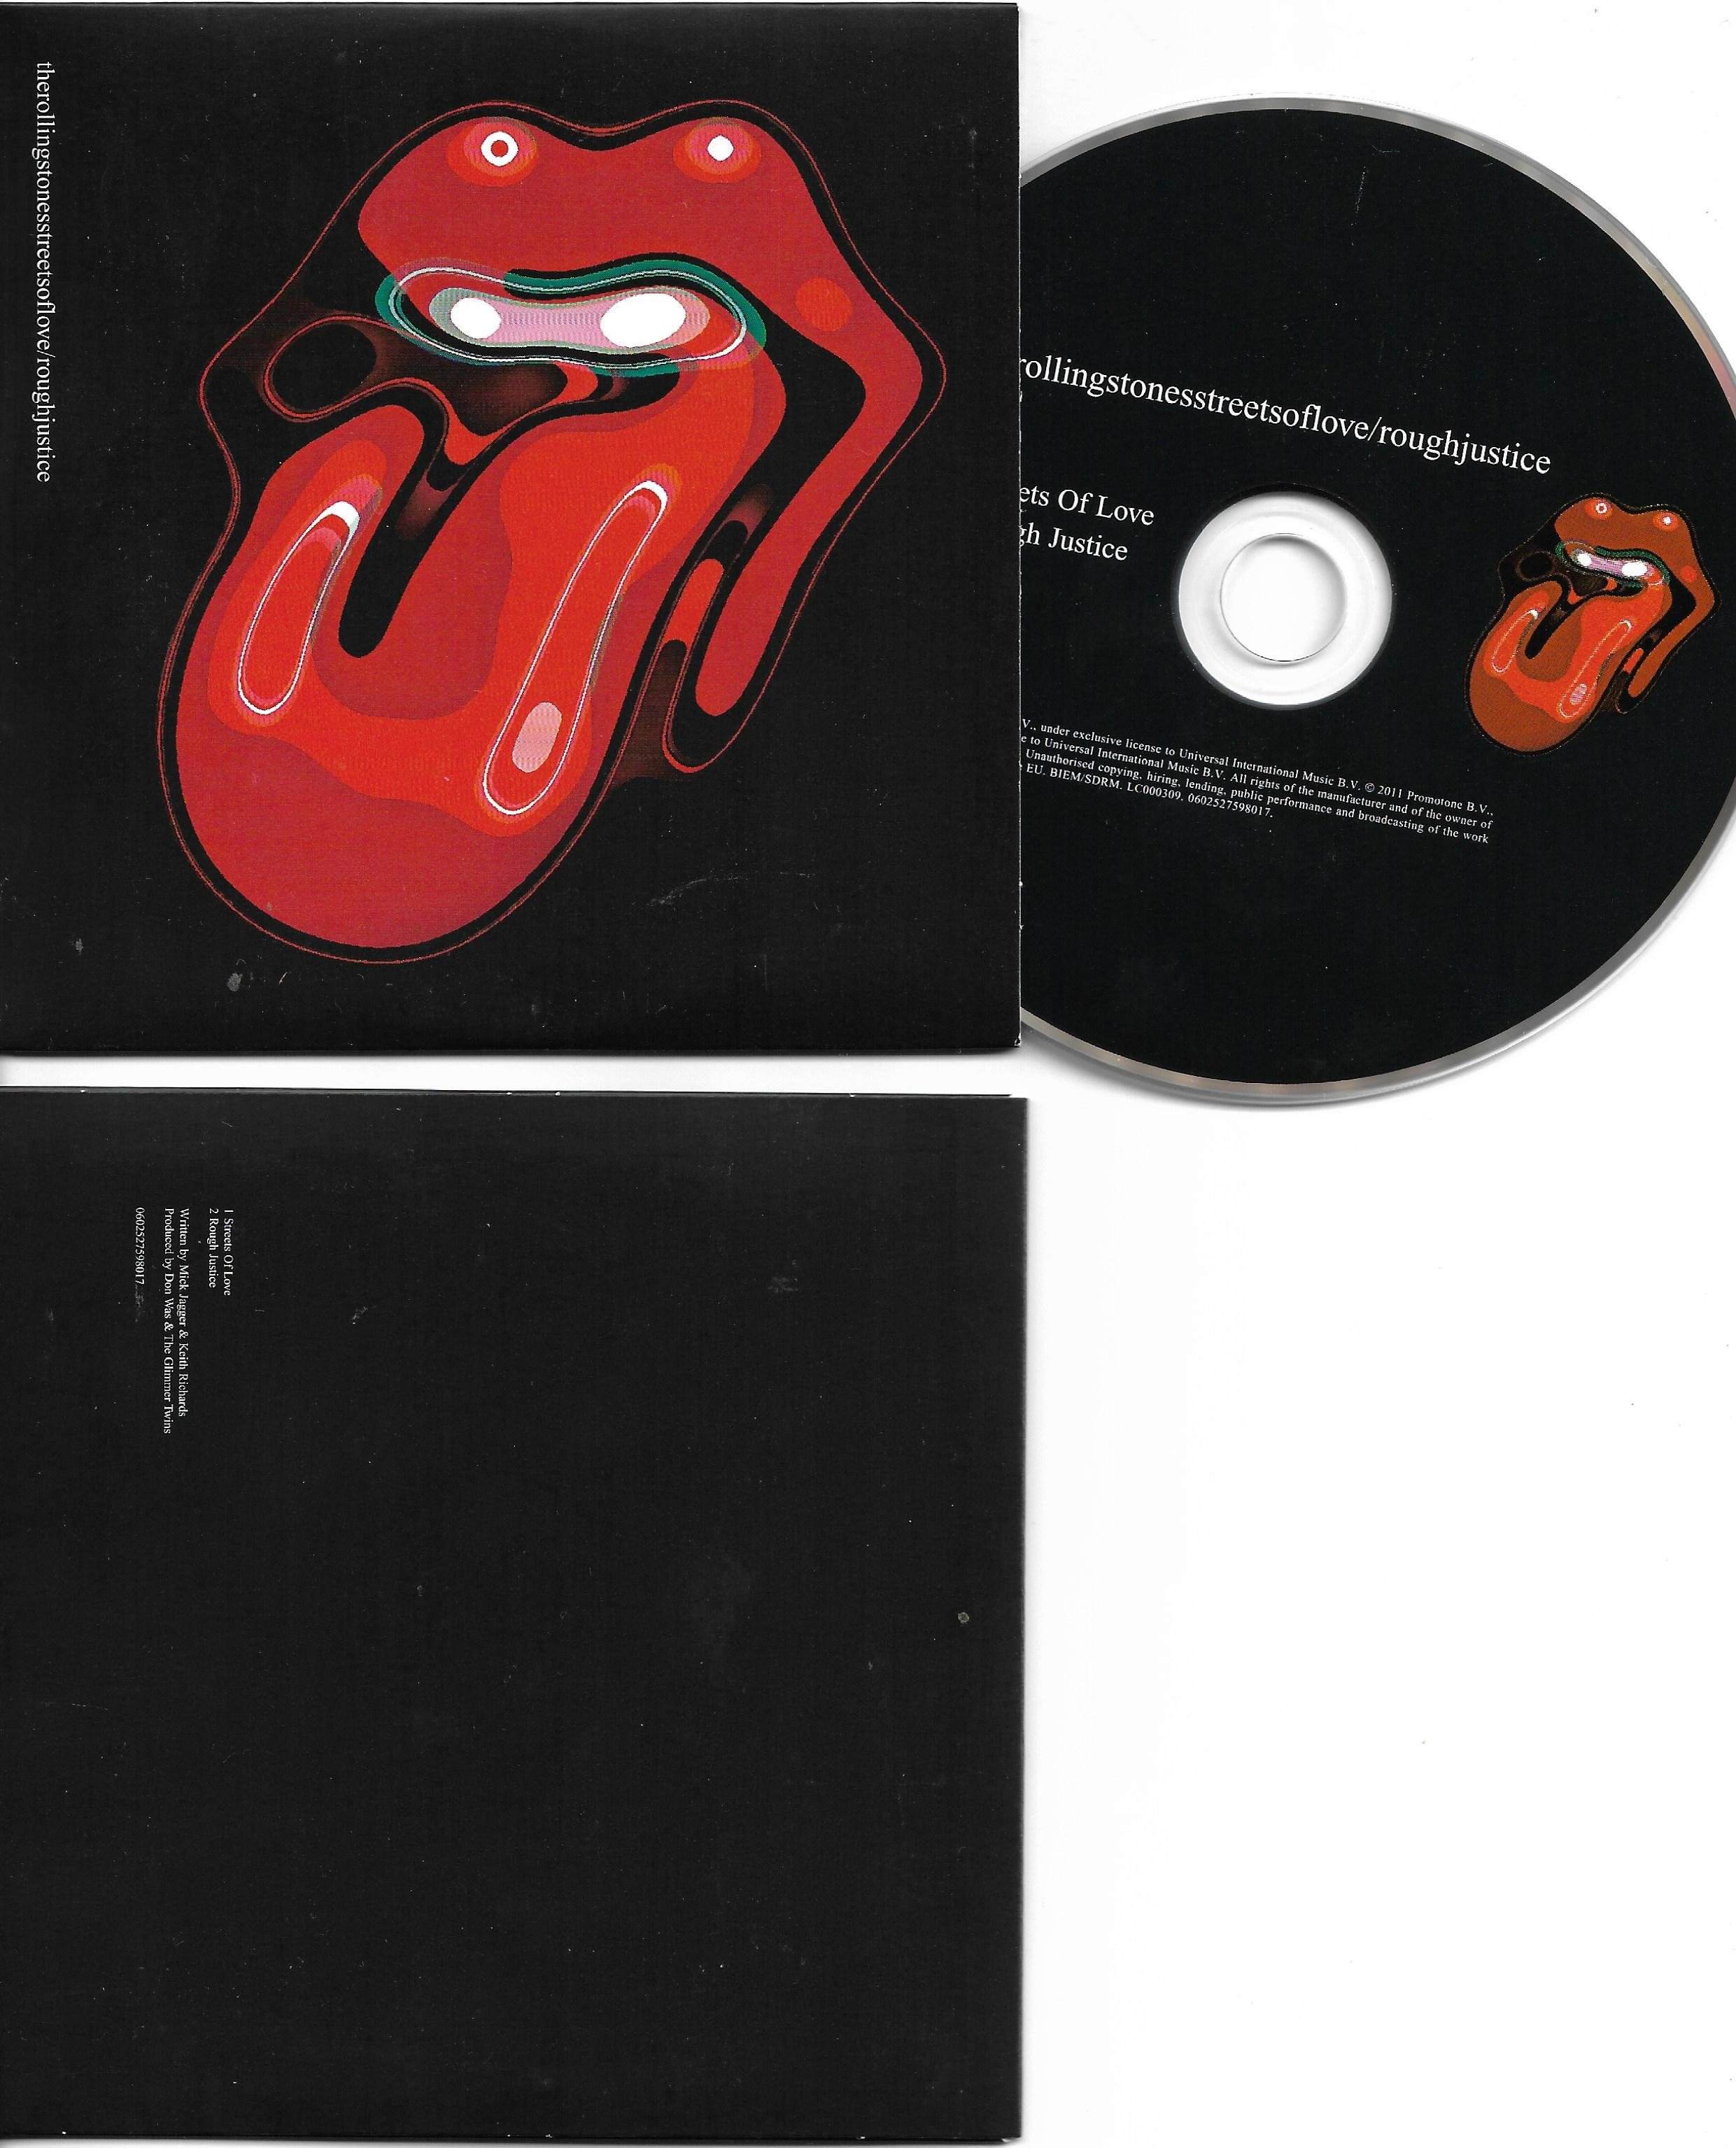 ROLLING STONES - Streets Of Love 2-track Card Sleeve